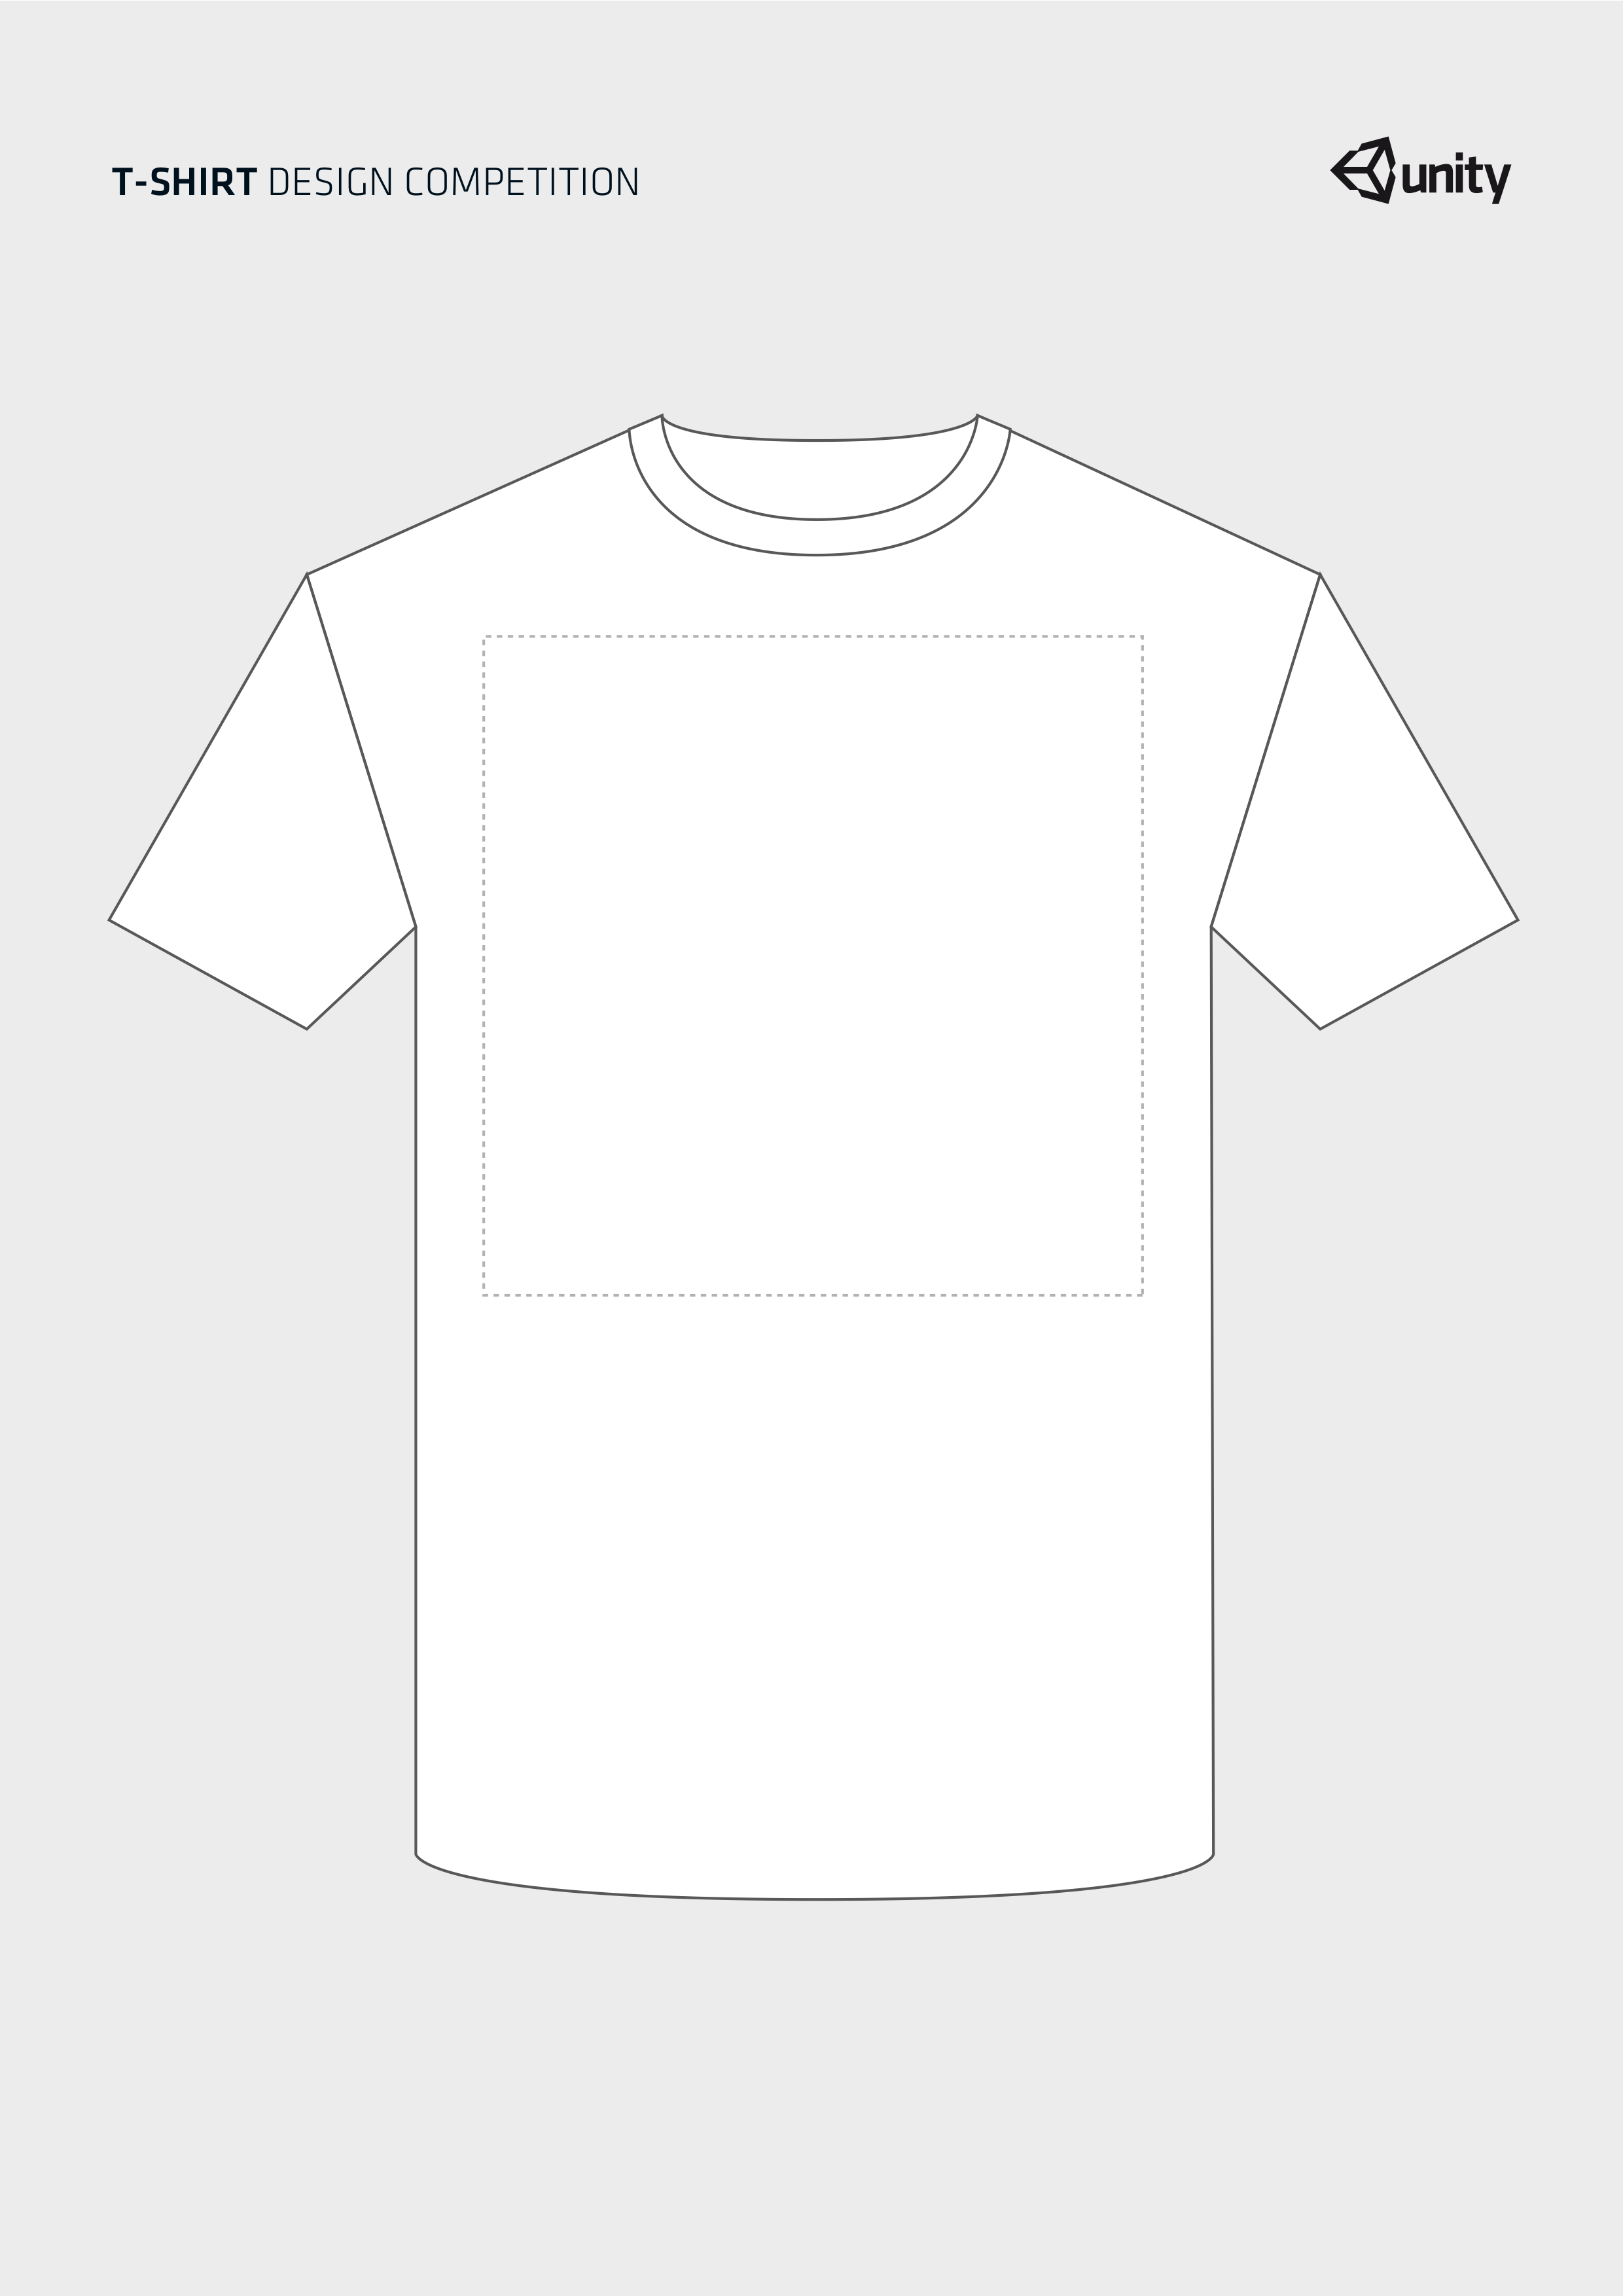 Shirt design guidelines